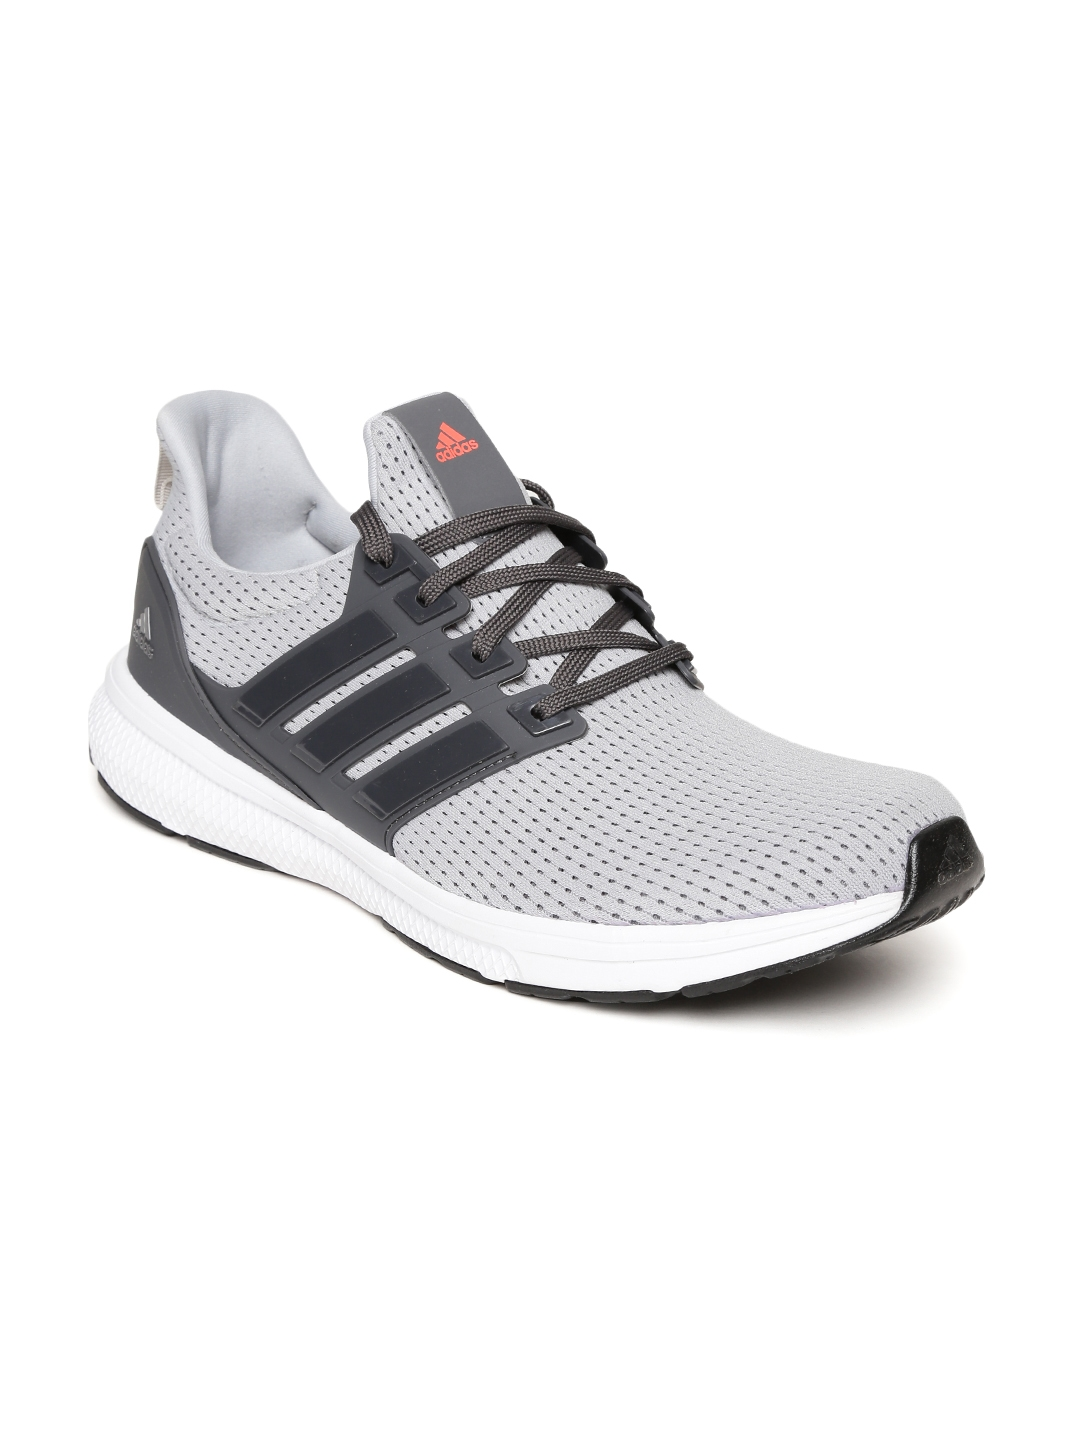 8c35c507ca19 Buy ADIDAS Men Grey JERZO Running Shoes - Sports Shoes for Men ...